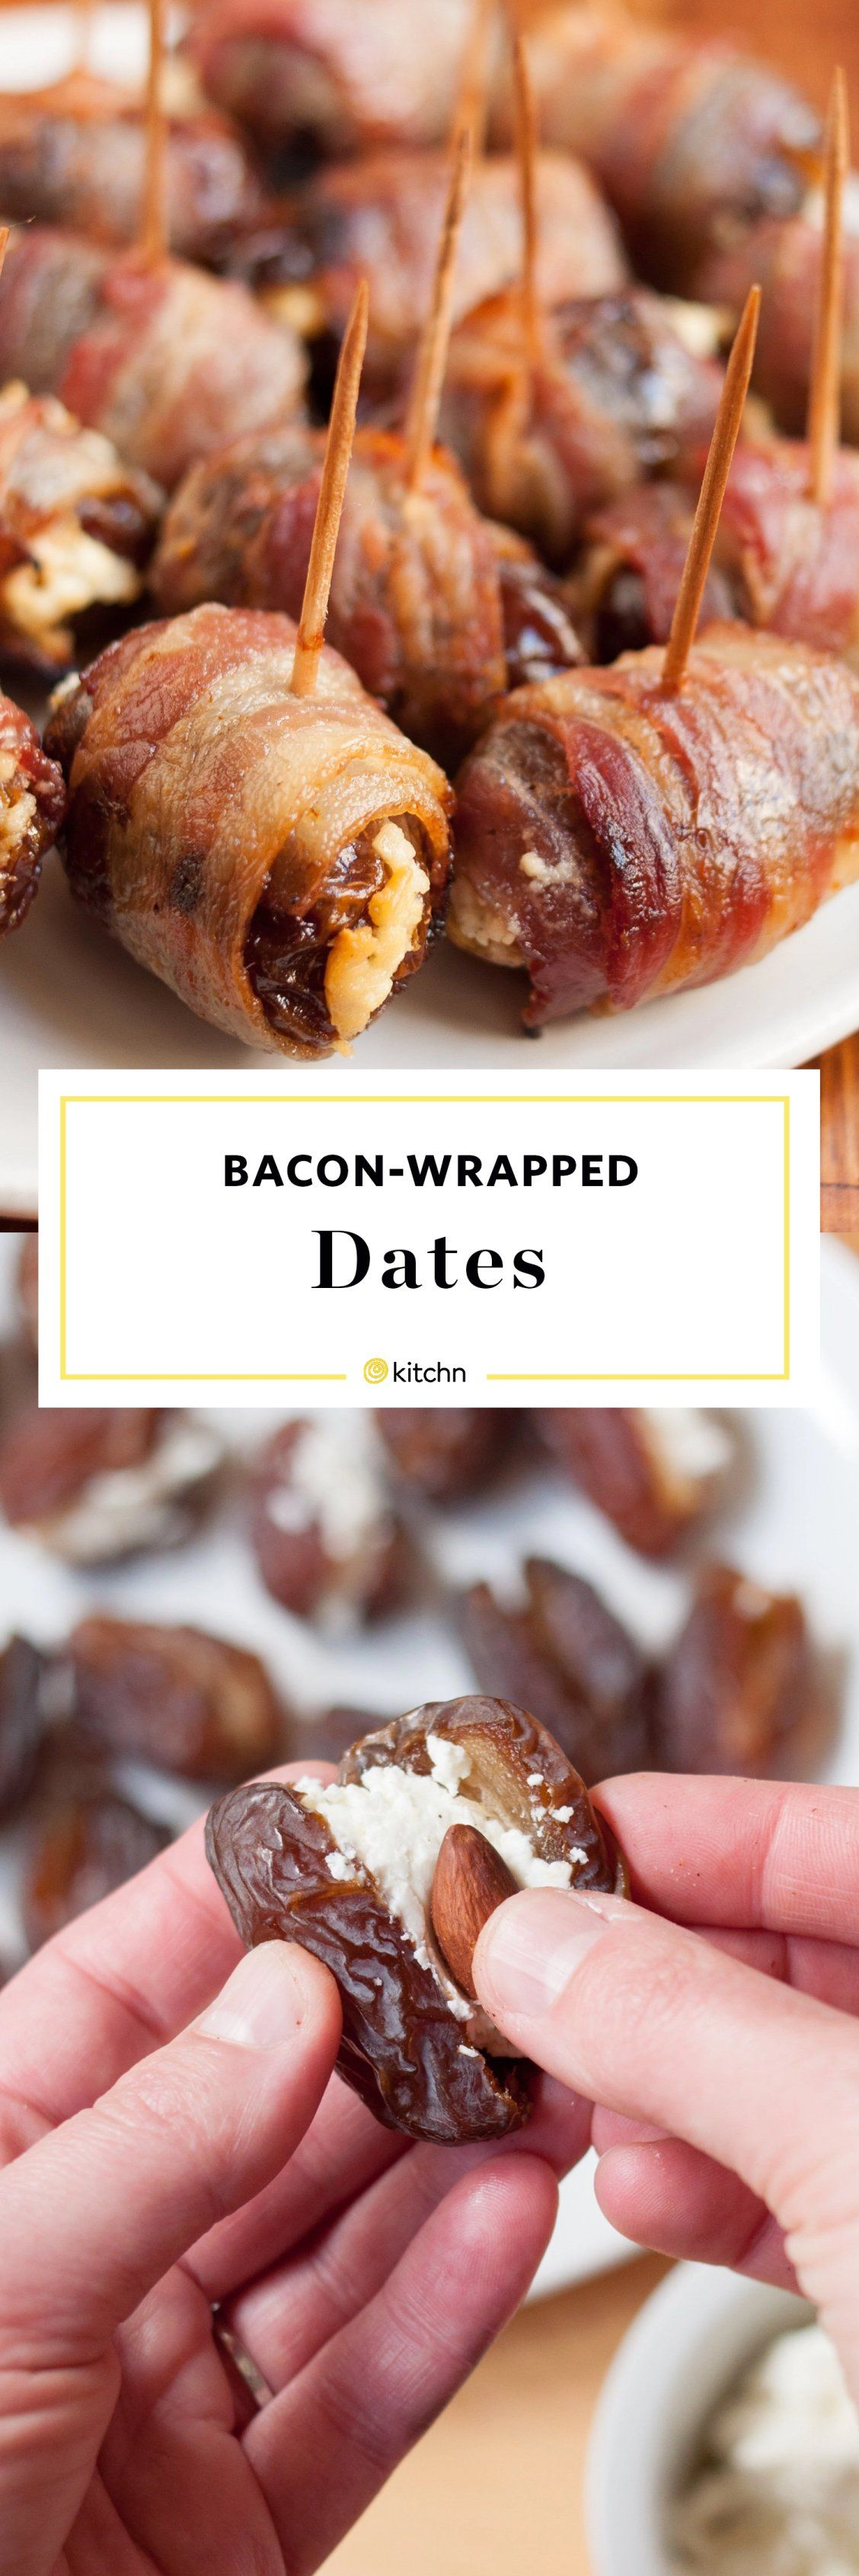 Photo of How To Make Bacon-Wrapped Dates